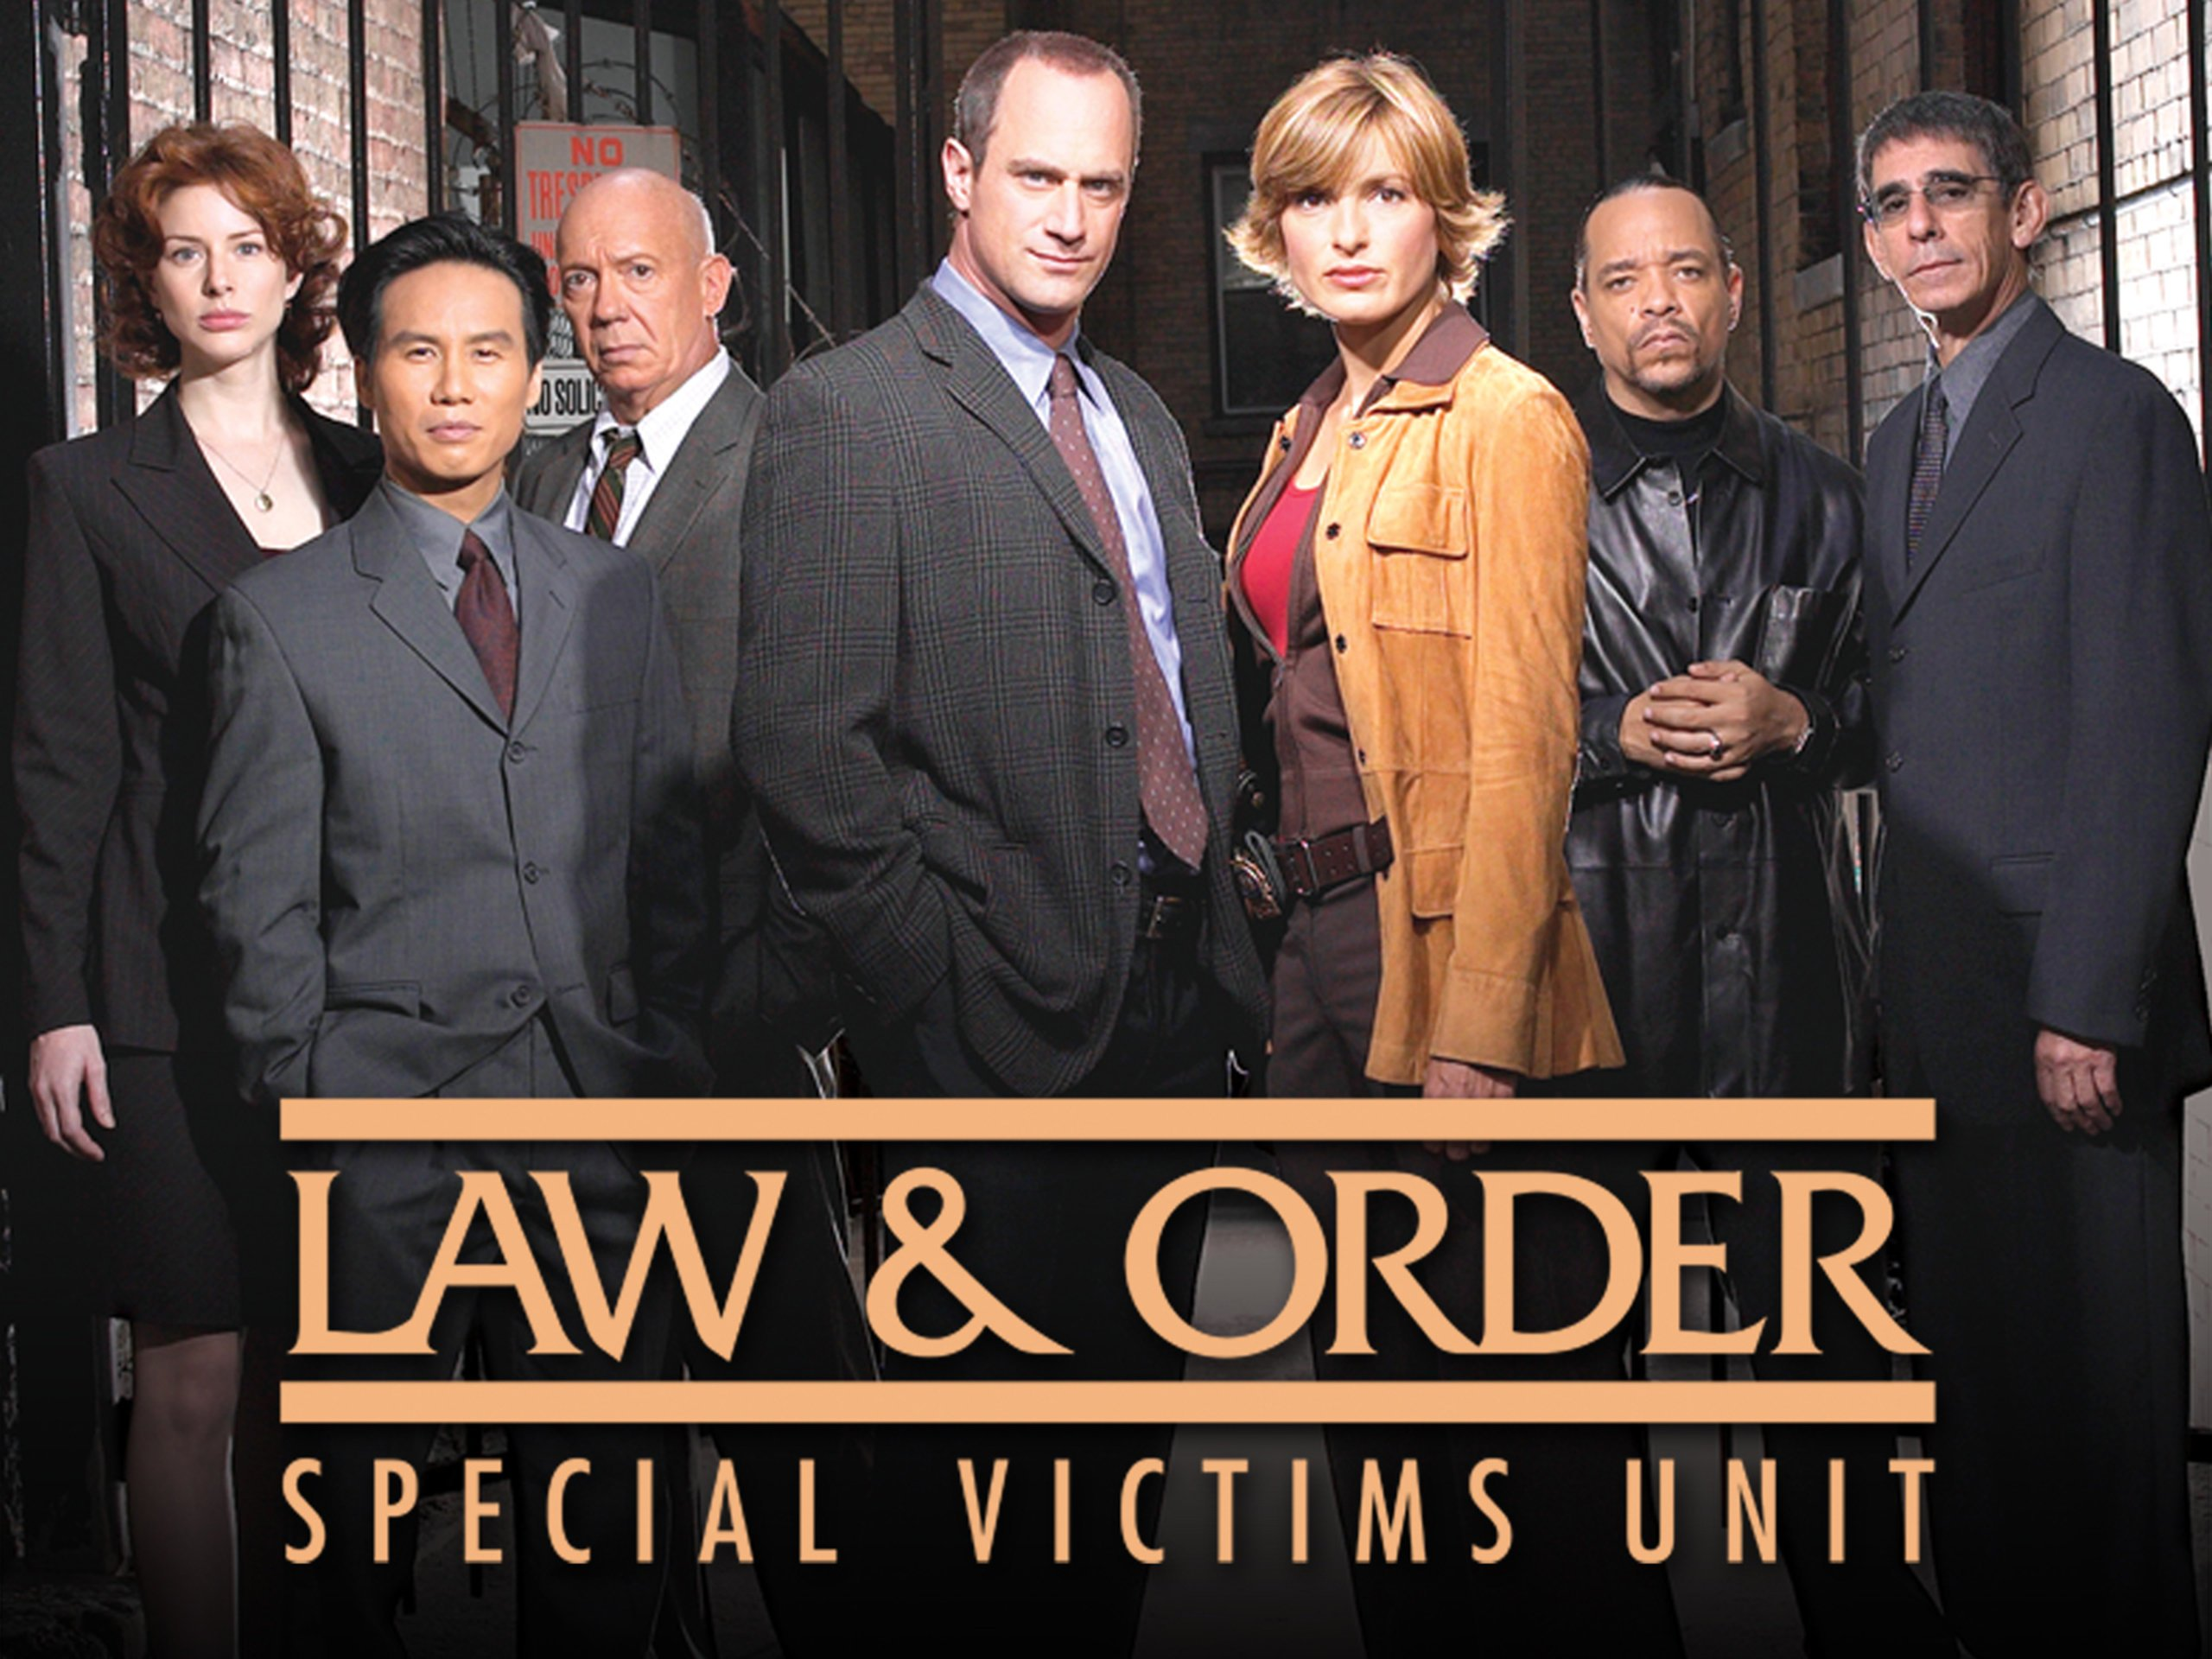 law and order special victims unit season 11 episode 3